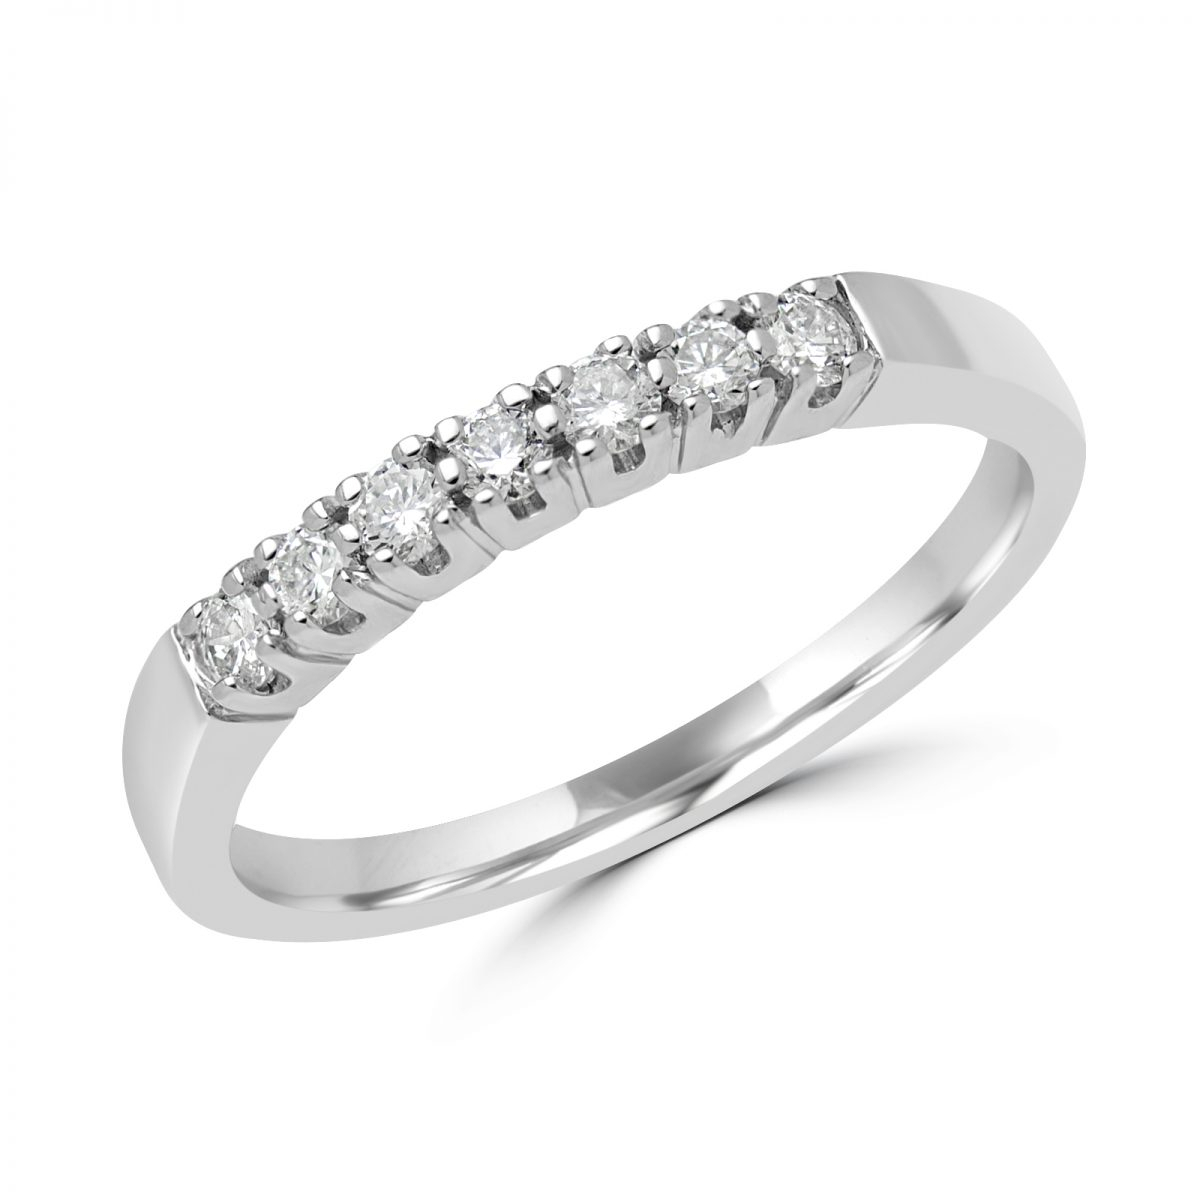 7 Stone Diamond Anniversary Band In White Gold For Most Recent Diamond Seven Stone Anniversary Bands In White Gold (View 12 of 25)